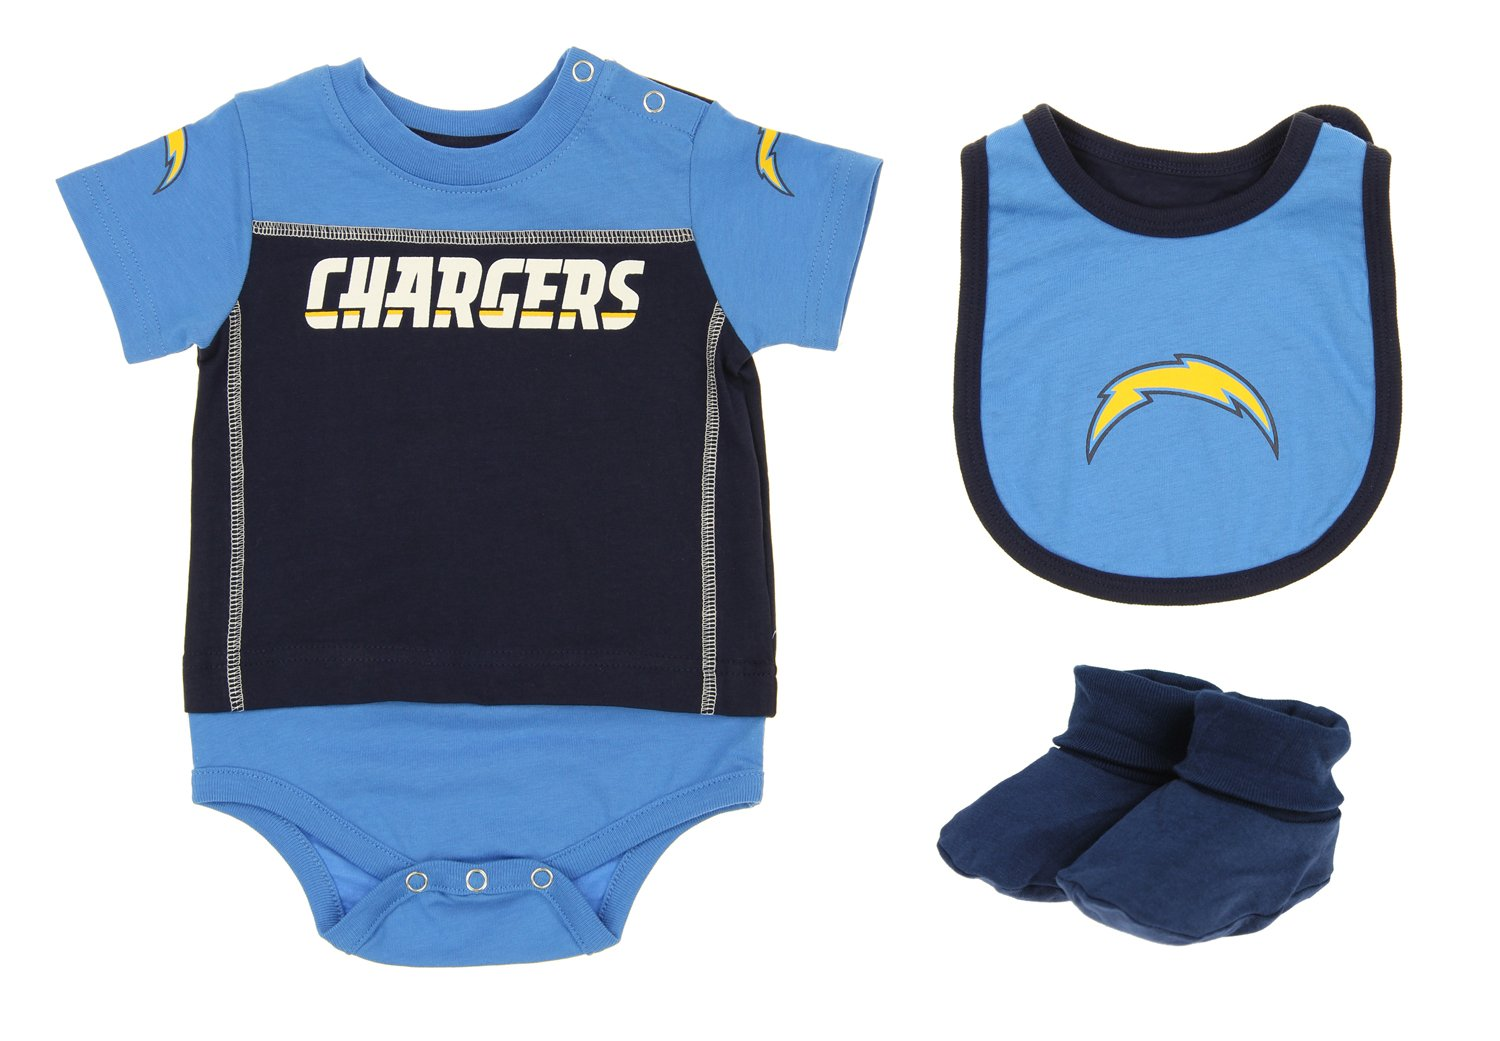 e6679cf6a Amazon.com  Outerstuff San Diego Chargers NFL Baby Boys Newborn Infant LIL   Jersey 3 Piece Bodysuit Set  Sports   Outdoors